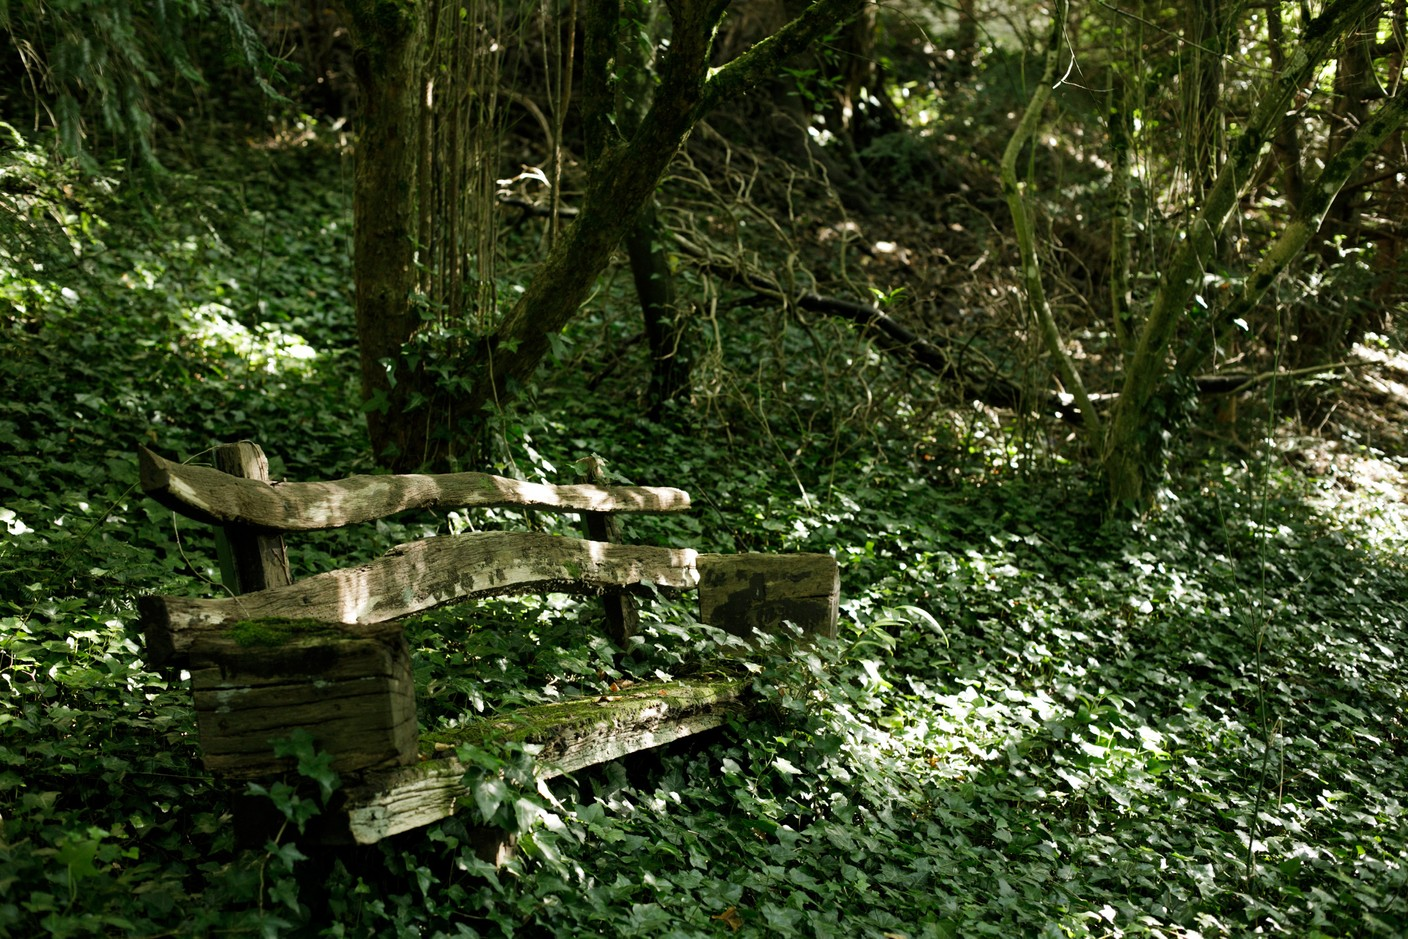 An old bench in the garden behind the building Matic Zorman / Maison Moderne